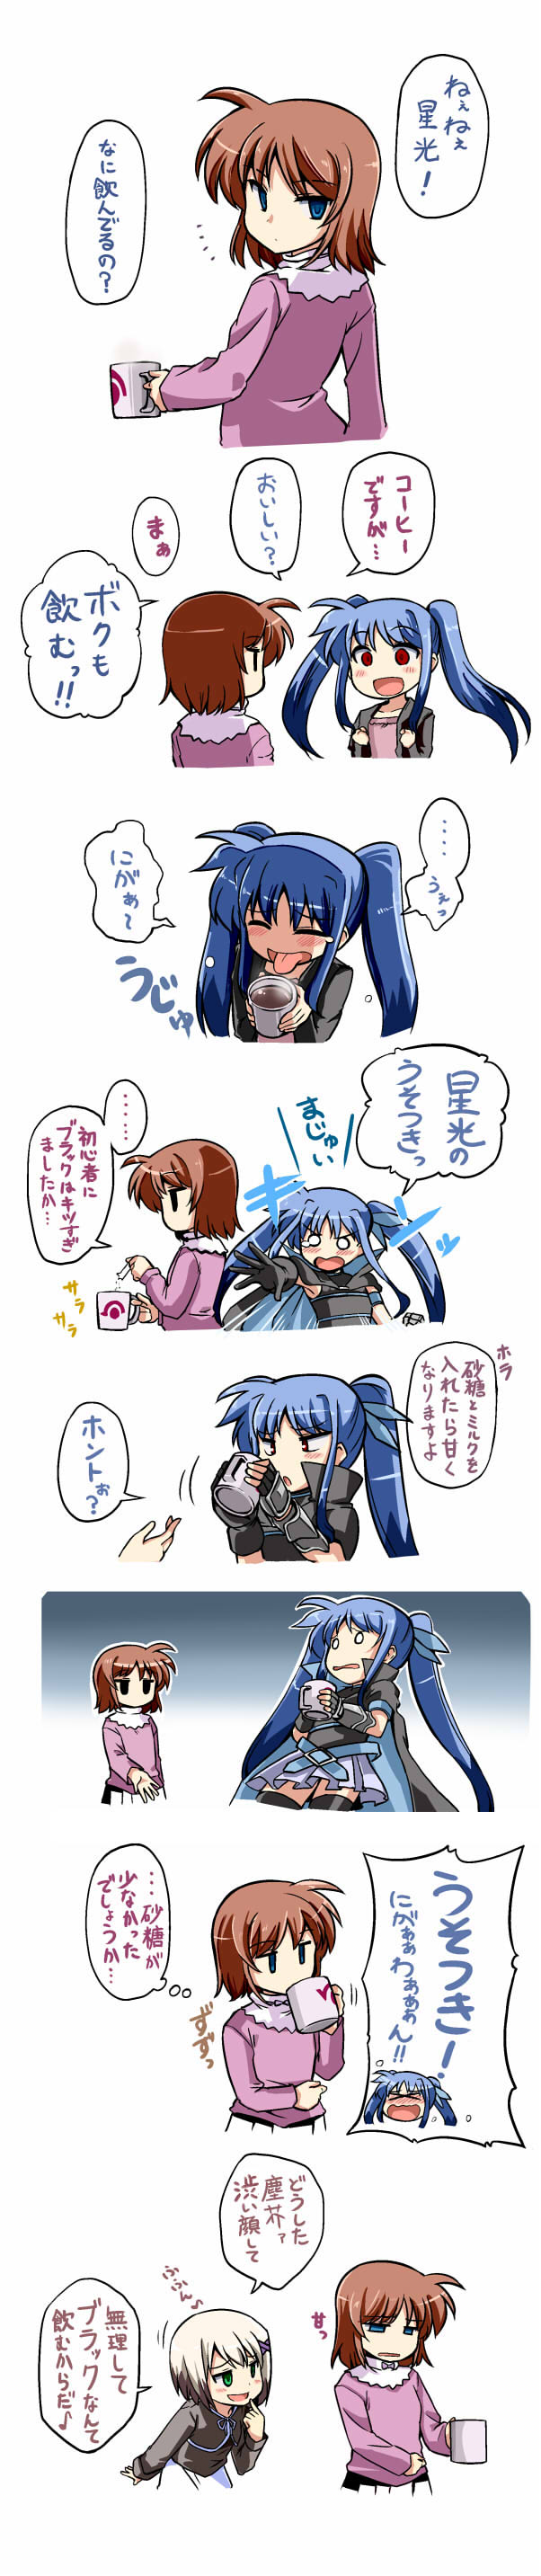 material-d, material-l, and material-s (lyrical nanoha, mahou shoujo lyrical nanoha, mahou shoujo lyrical nanoha a's, and mahou shoujo lyrical nanoha a's portable: the battle of aces) drawn by oda masaru